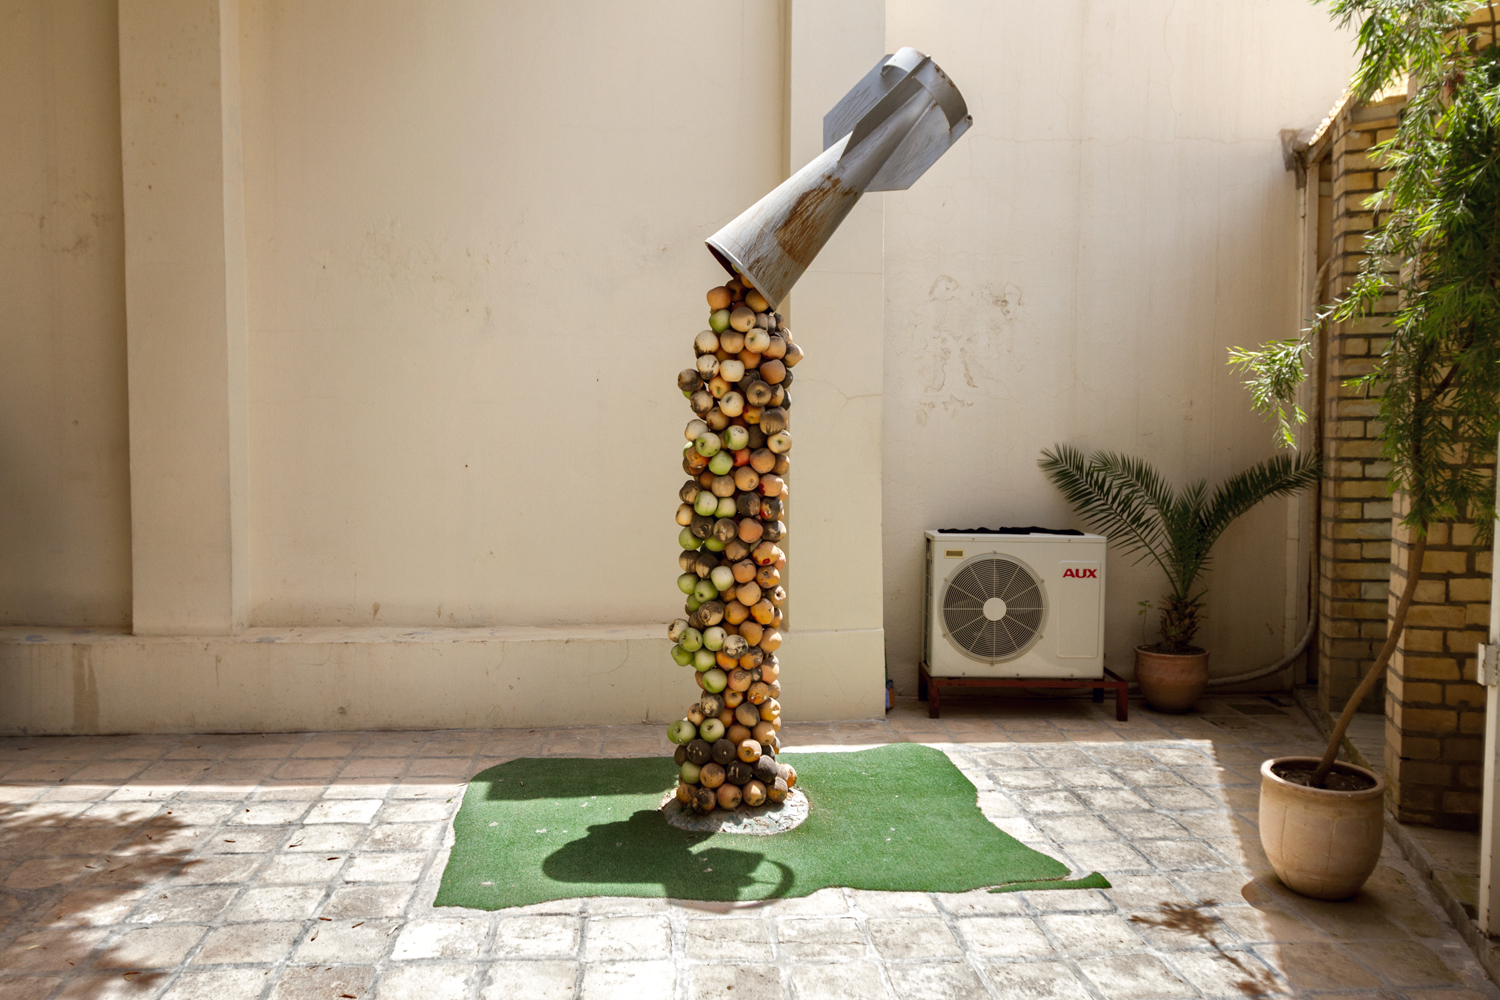 A local artist has repurposed a discarded weapons cannister into a symbol of regeneration, pouring forth local stone fruit. Throughout the region, whether by public art installations or agricultural initiatives, it's easy to see how plants is metaphorically and literally wielded to represent renewal despite persecution.